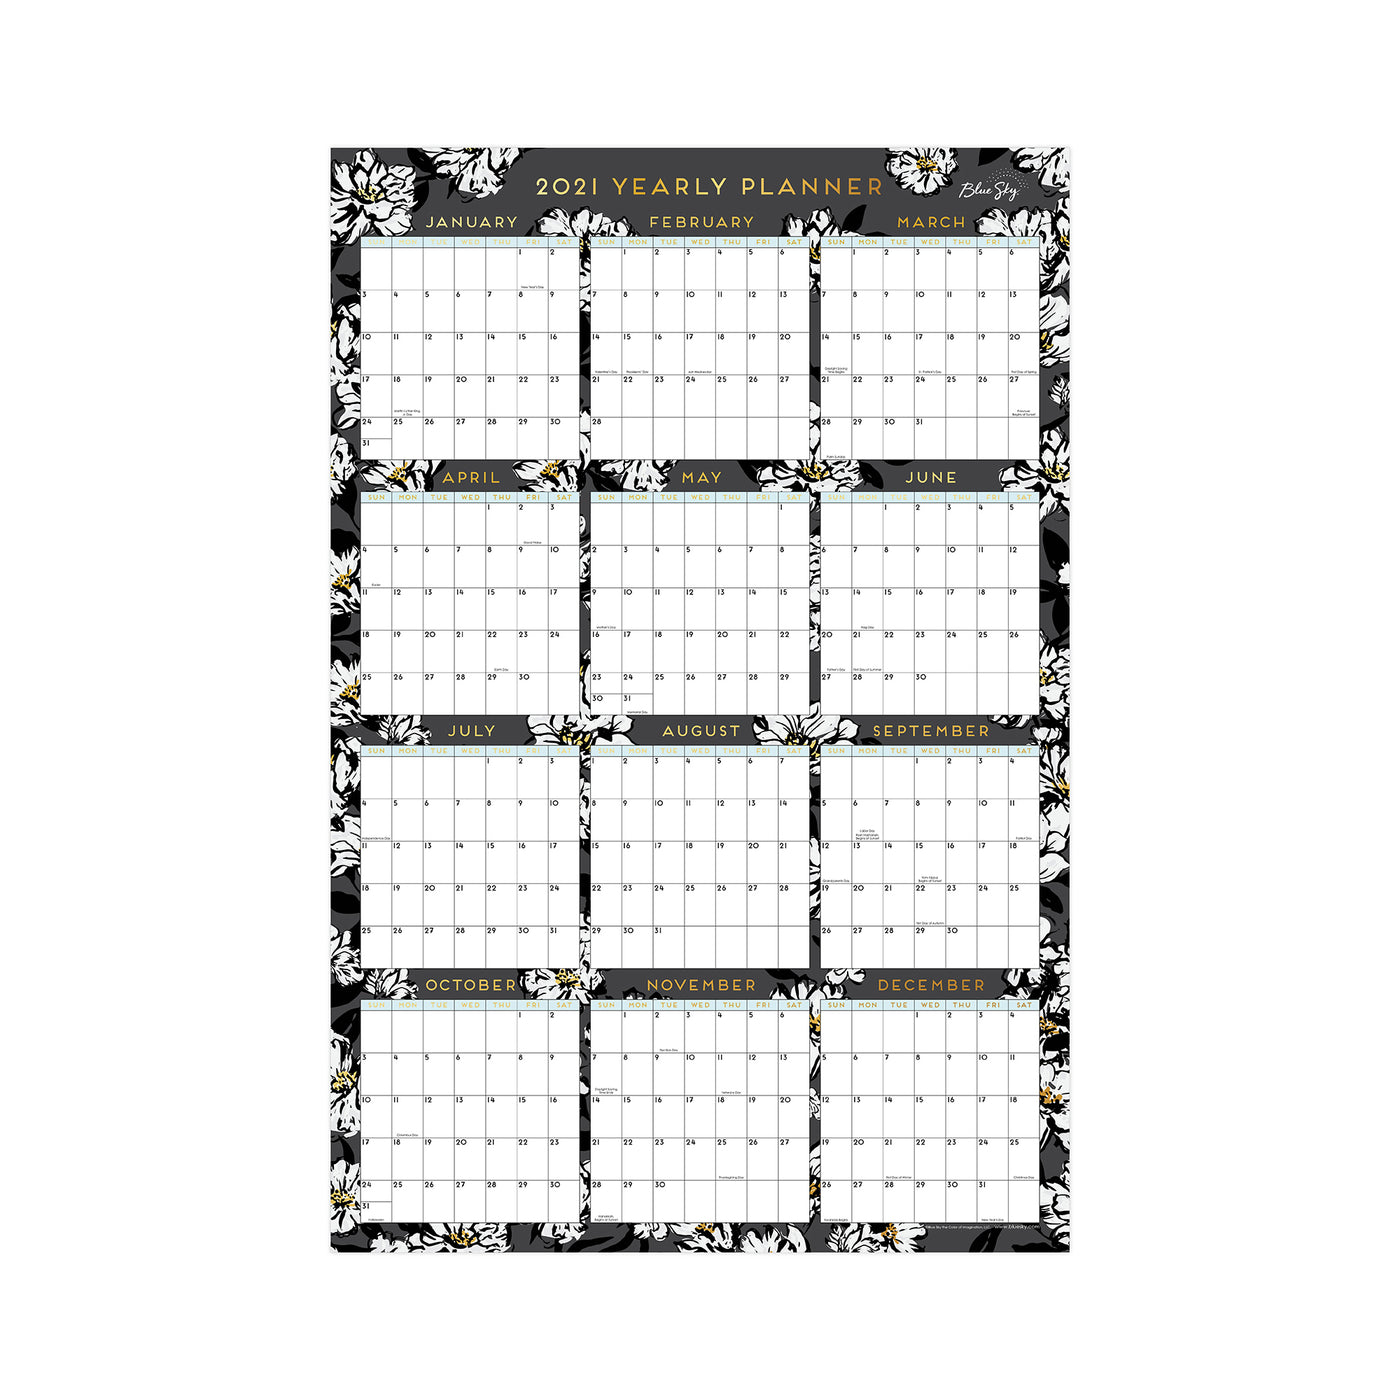 36x24 blue sky 2021 yearly wall calendar with black background, white flowers, and gold accents in a vertical view